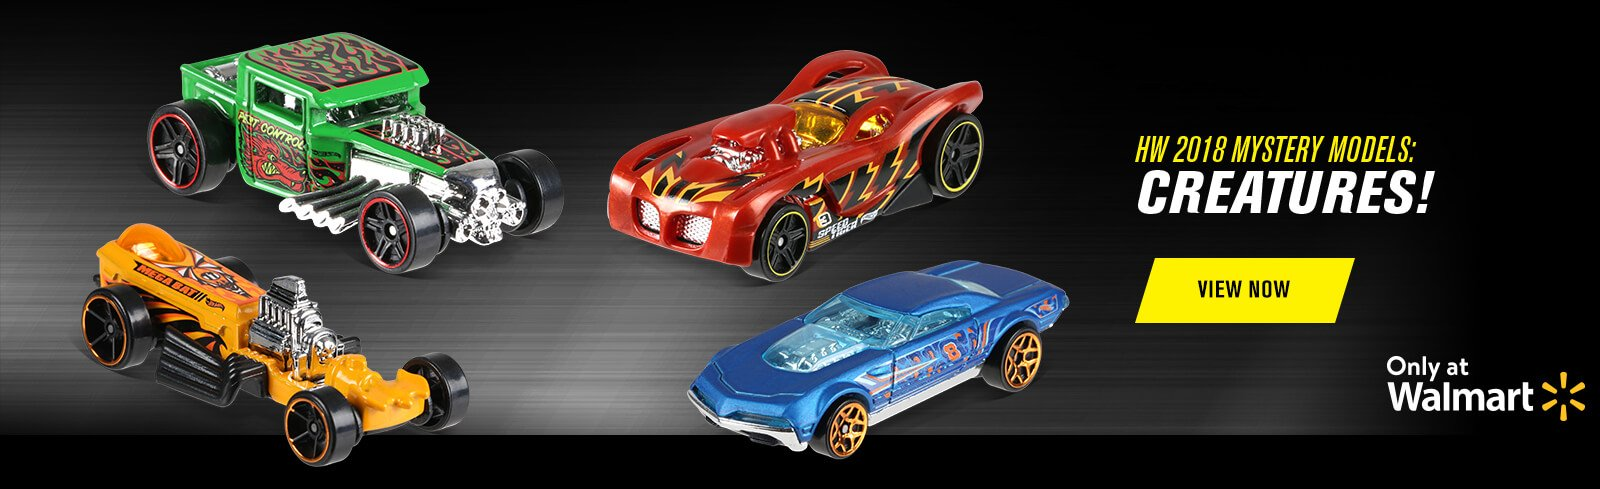 Hot Wheels 2018 Mystery Models Mix 4: Creatures!